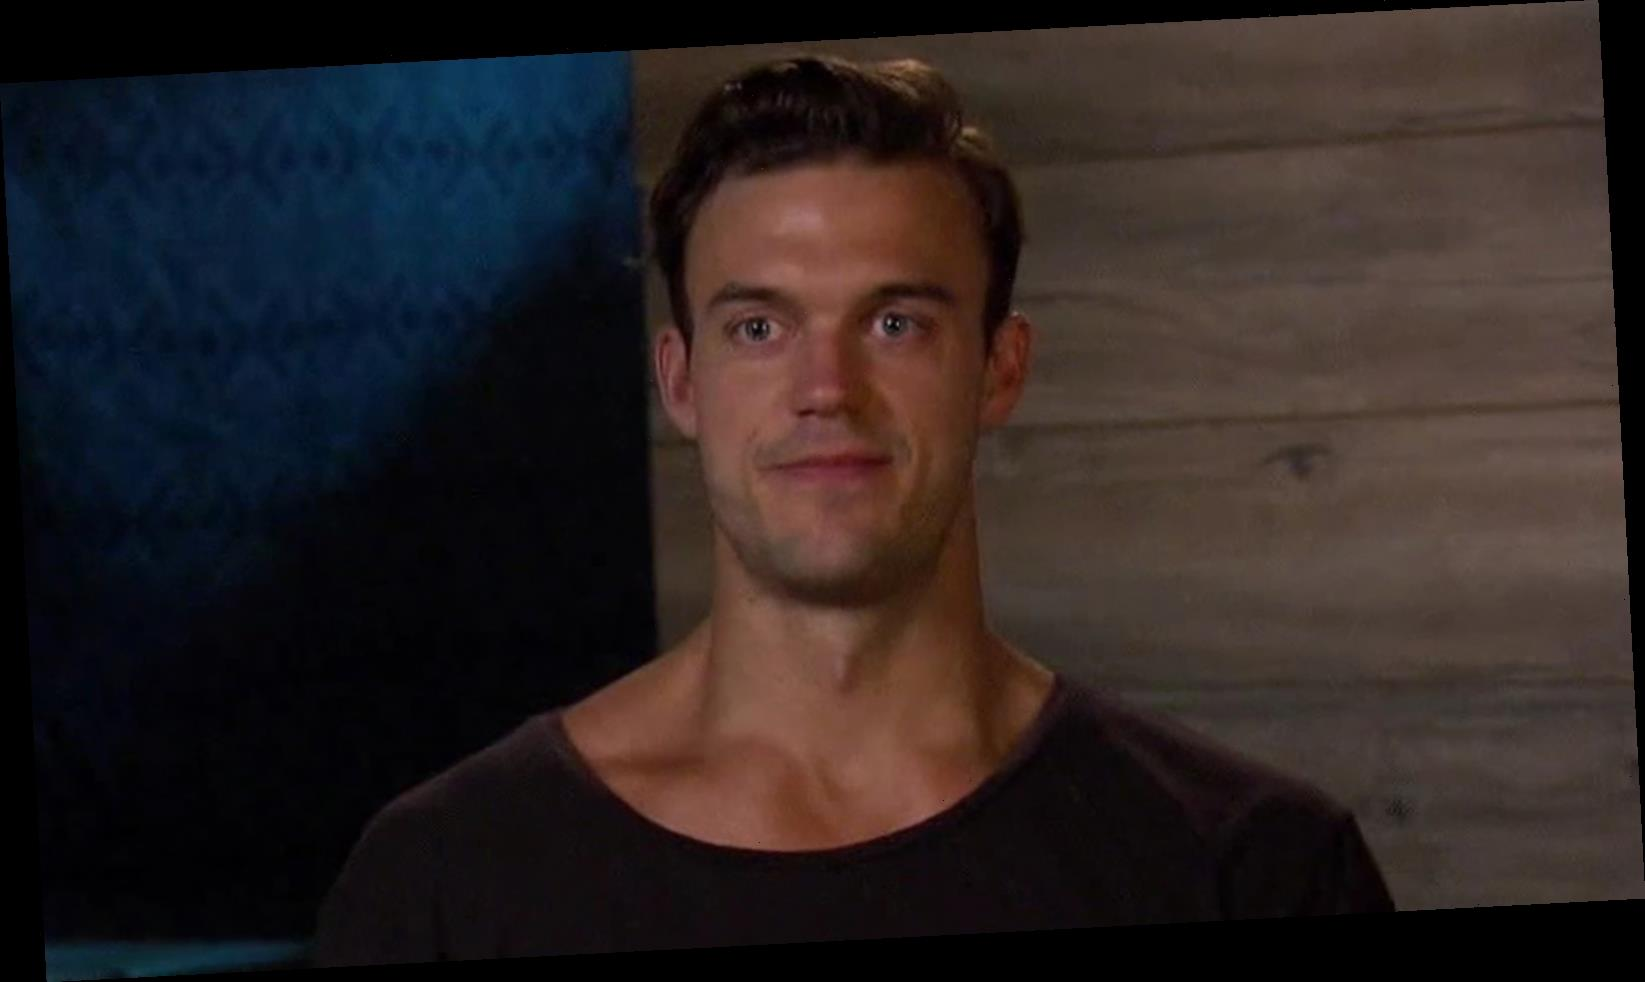 The Bachelorette: Twitter couldn't stop making jokes about Ben's shirt